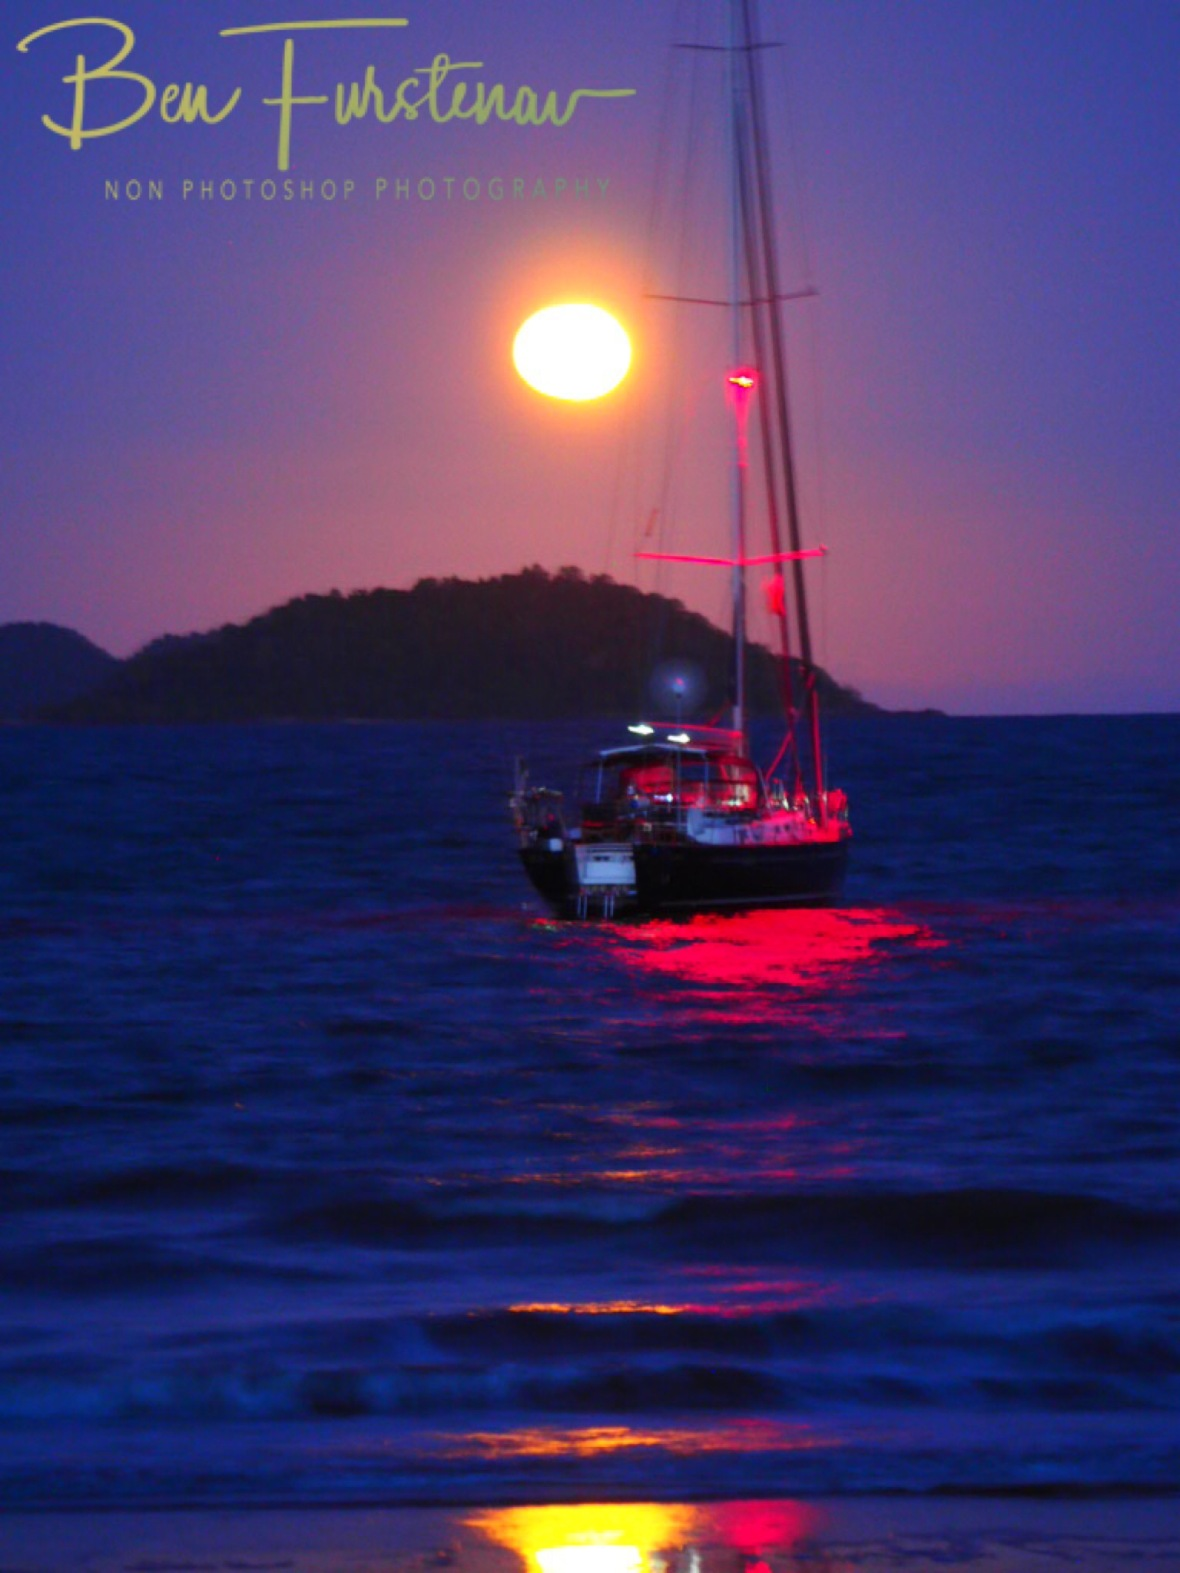 Yacht and full moon at Mission Beach, Tropical Queensland, Australia